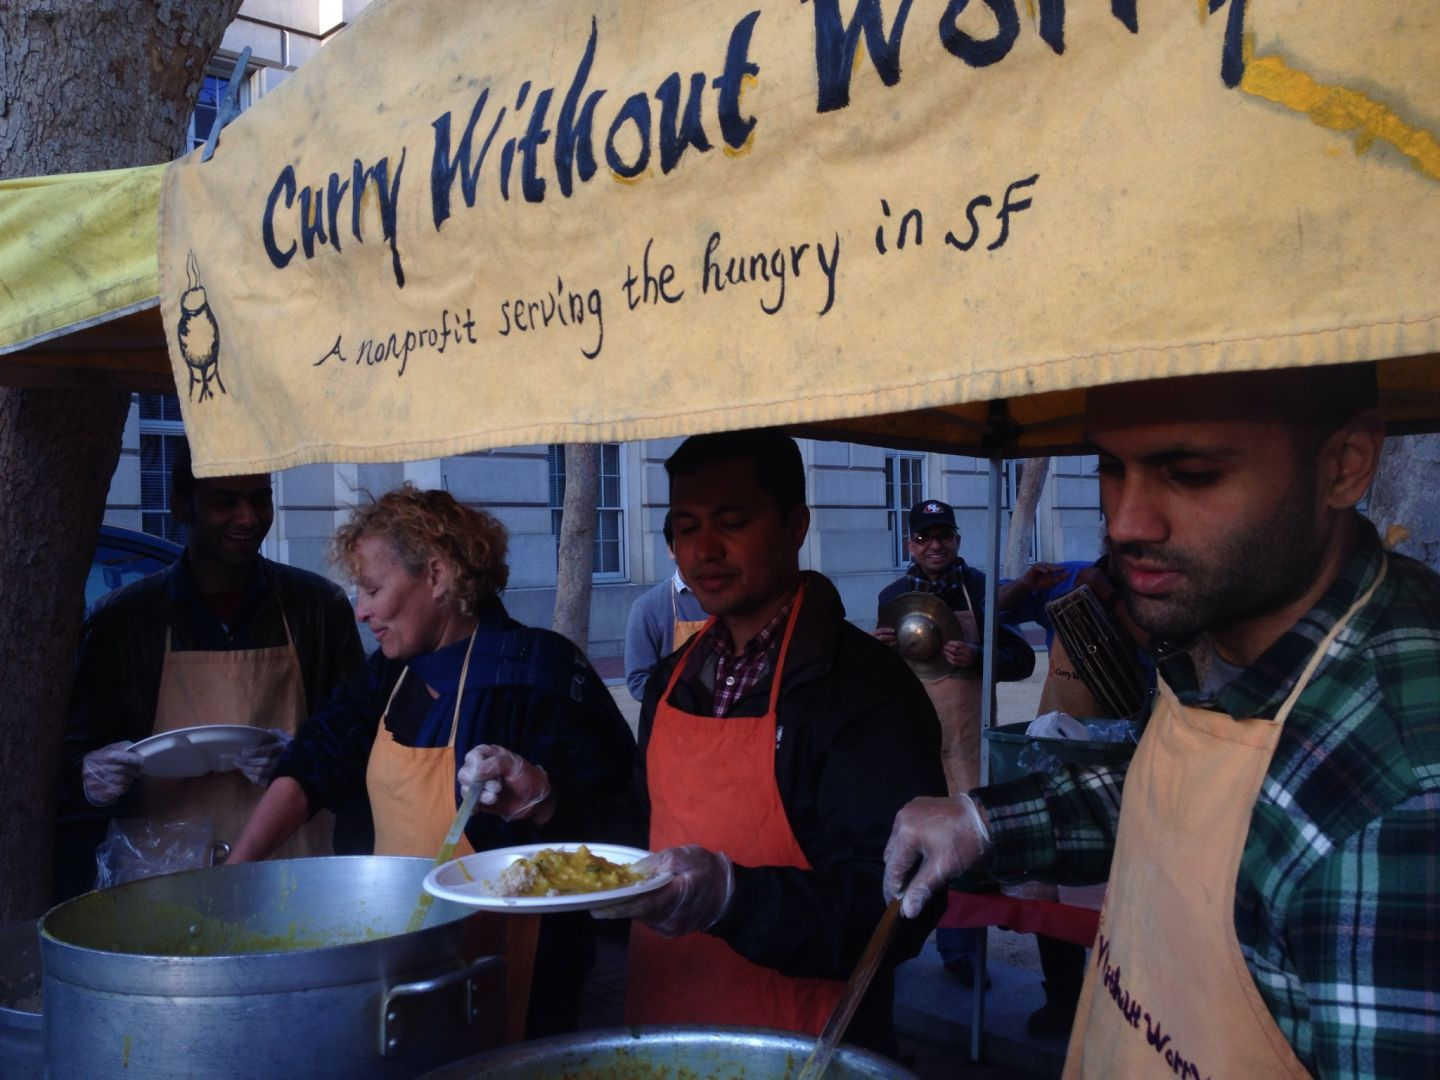 Curry without Worry serves hot meals to the hungry.